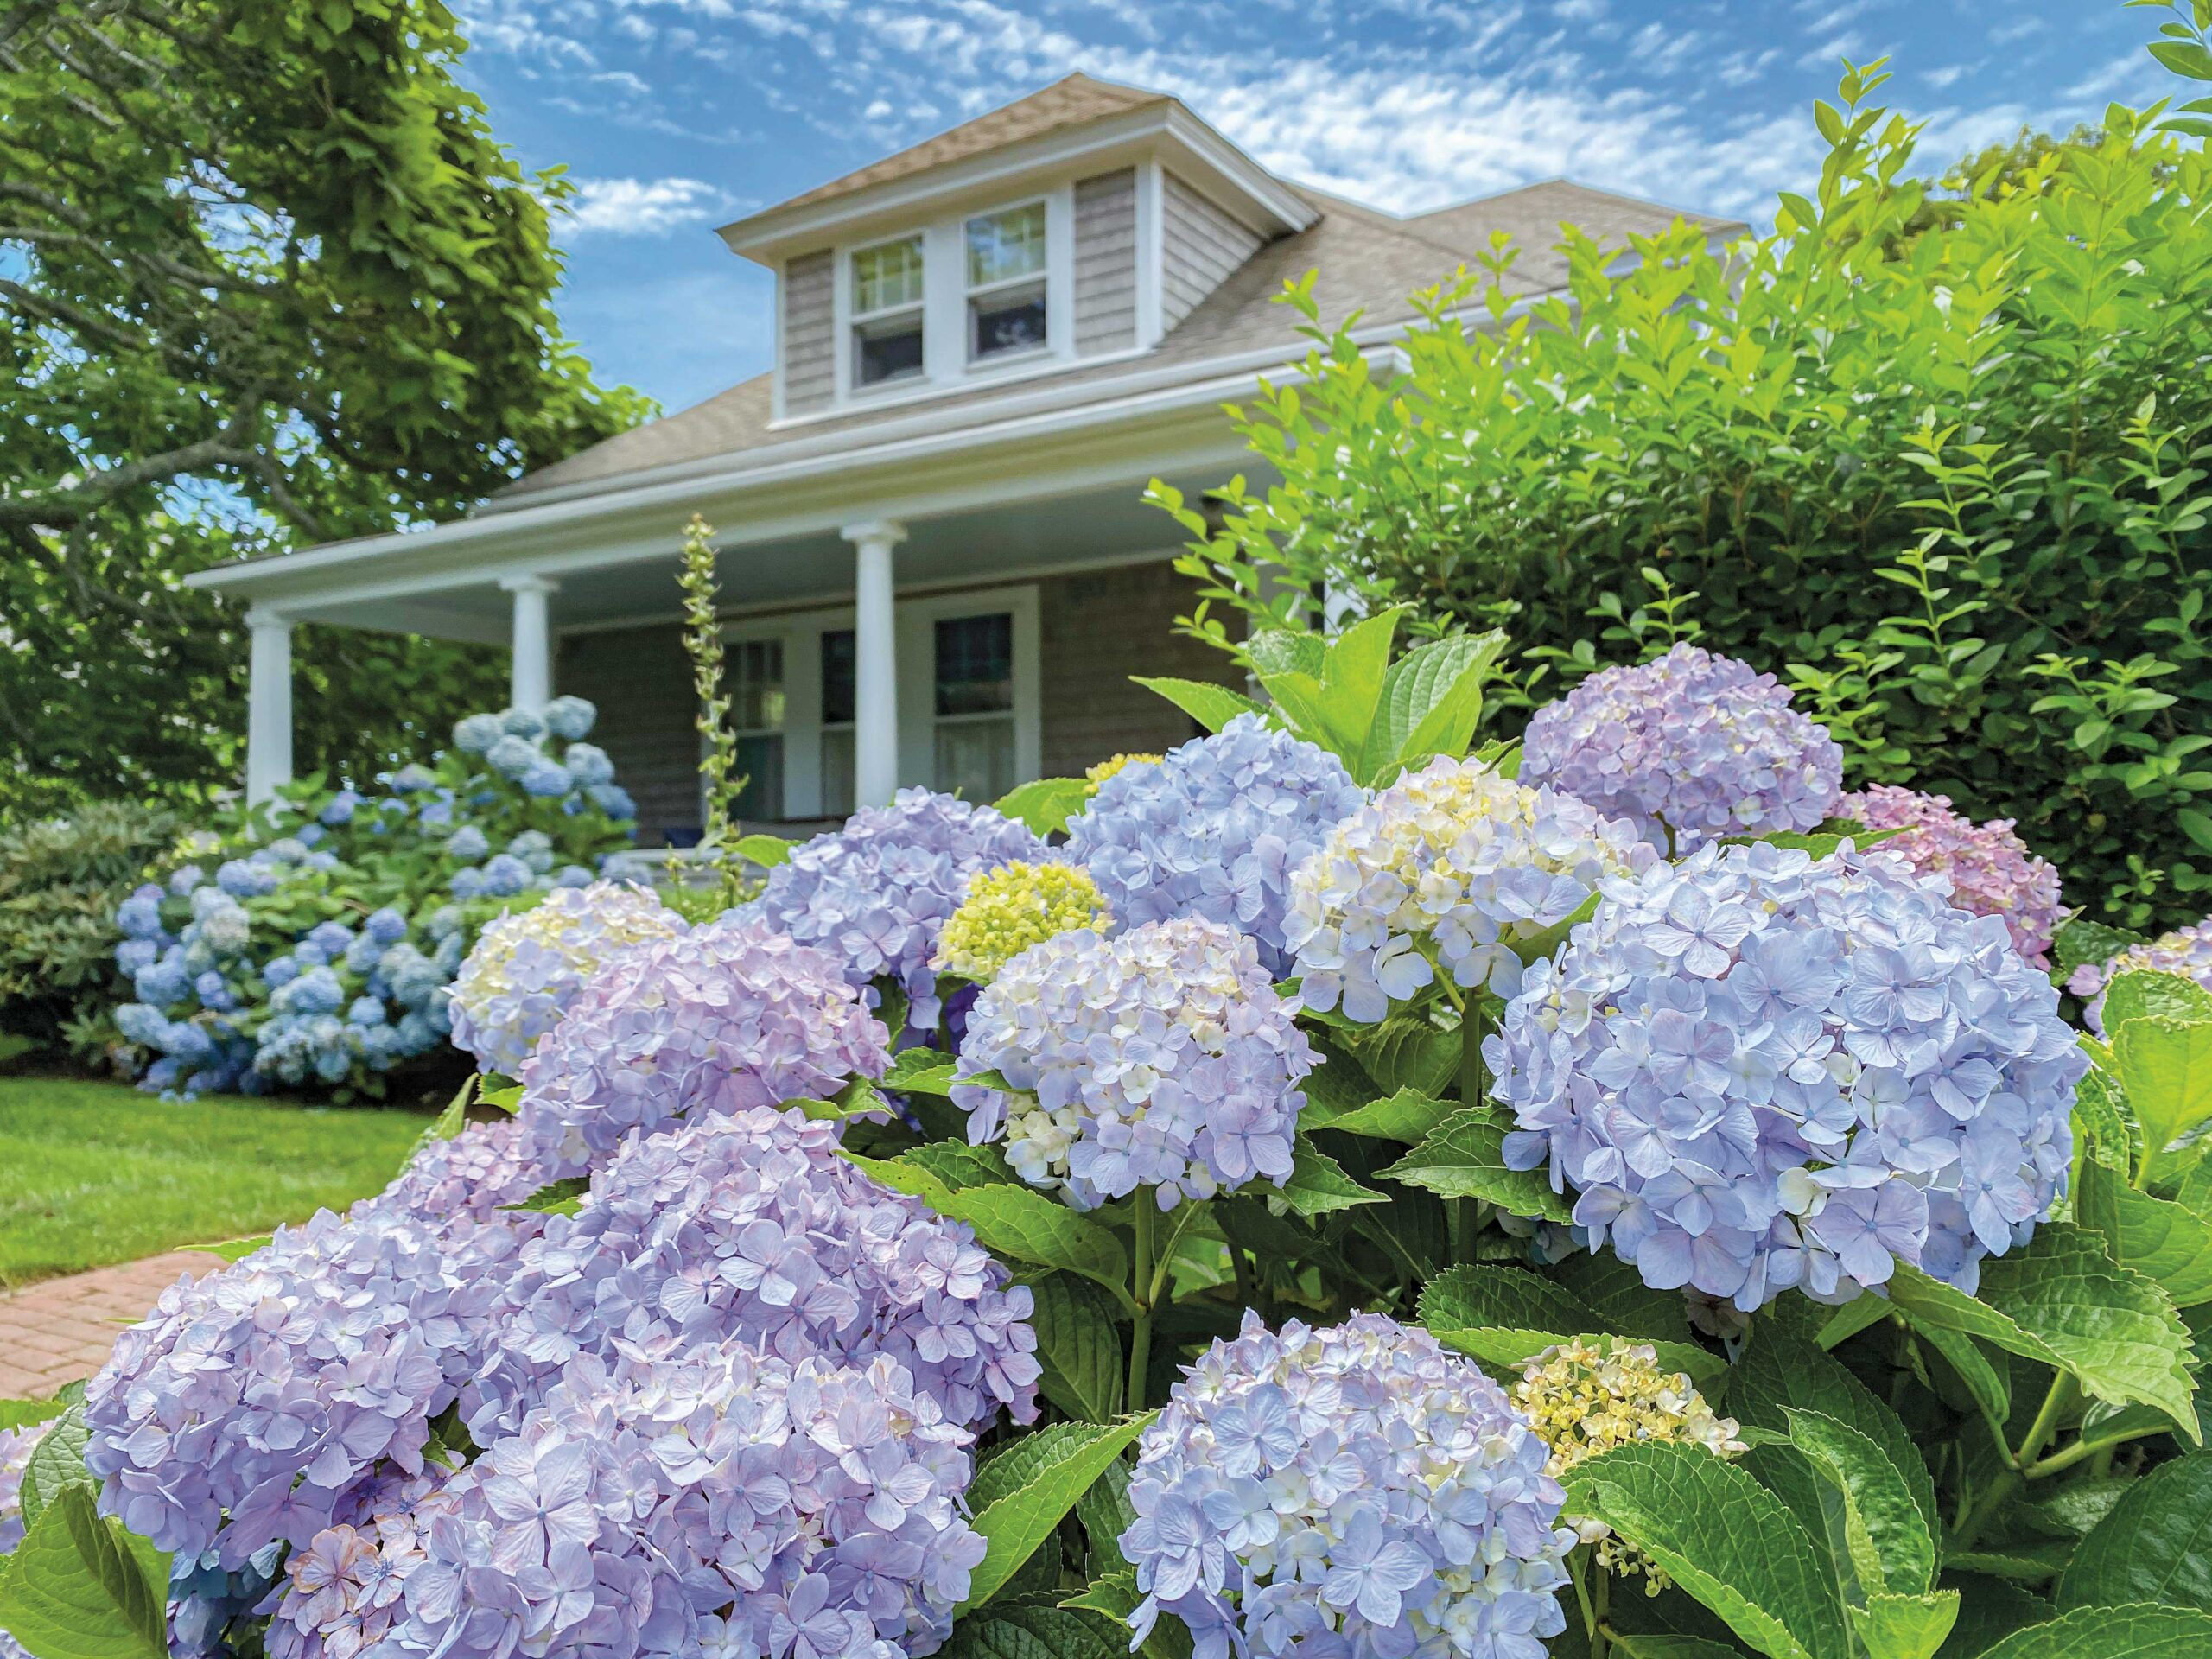 6 Easy Ways to Add Curb Appeal to Your Home